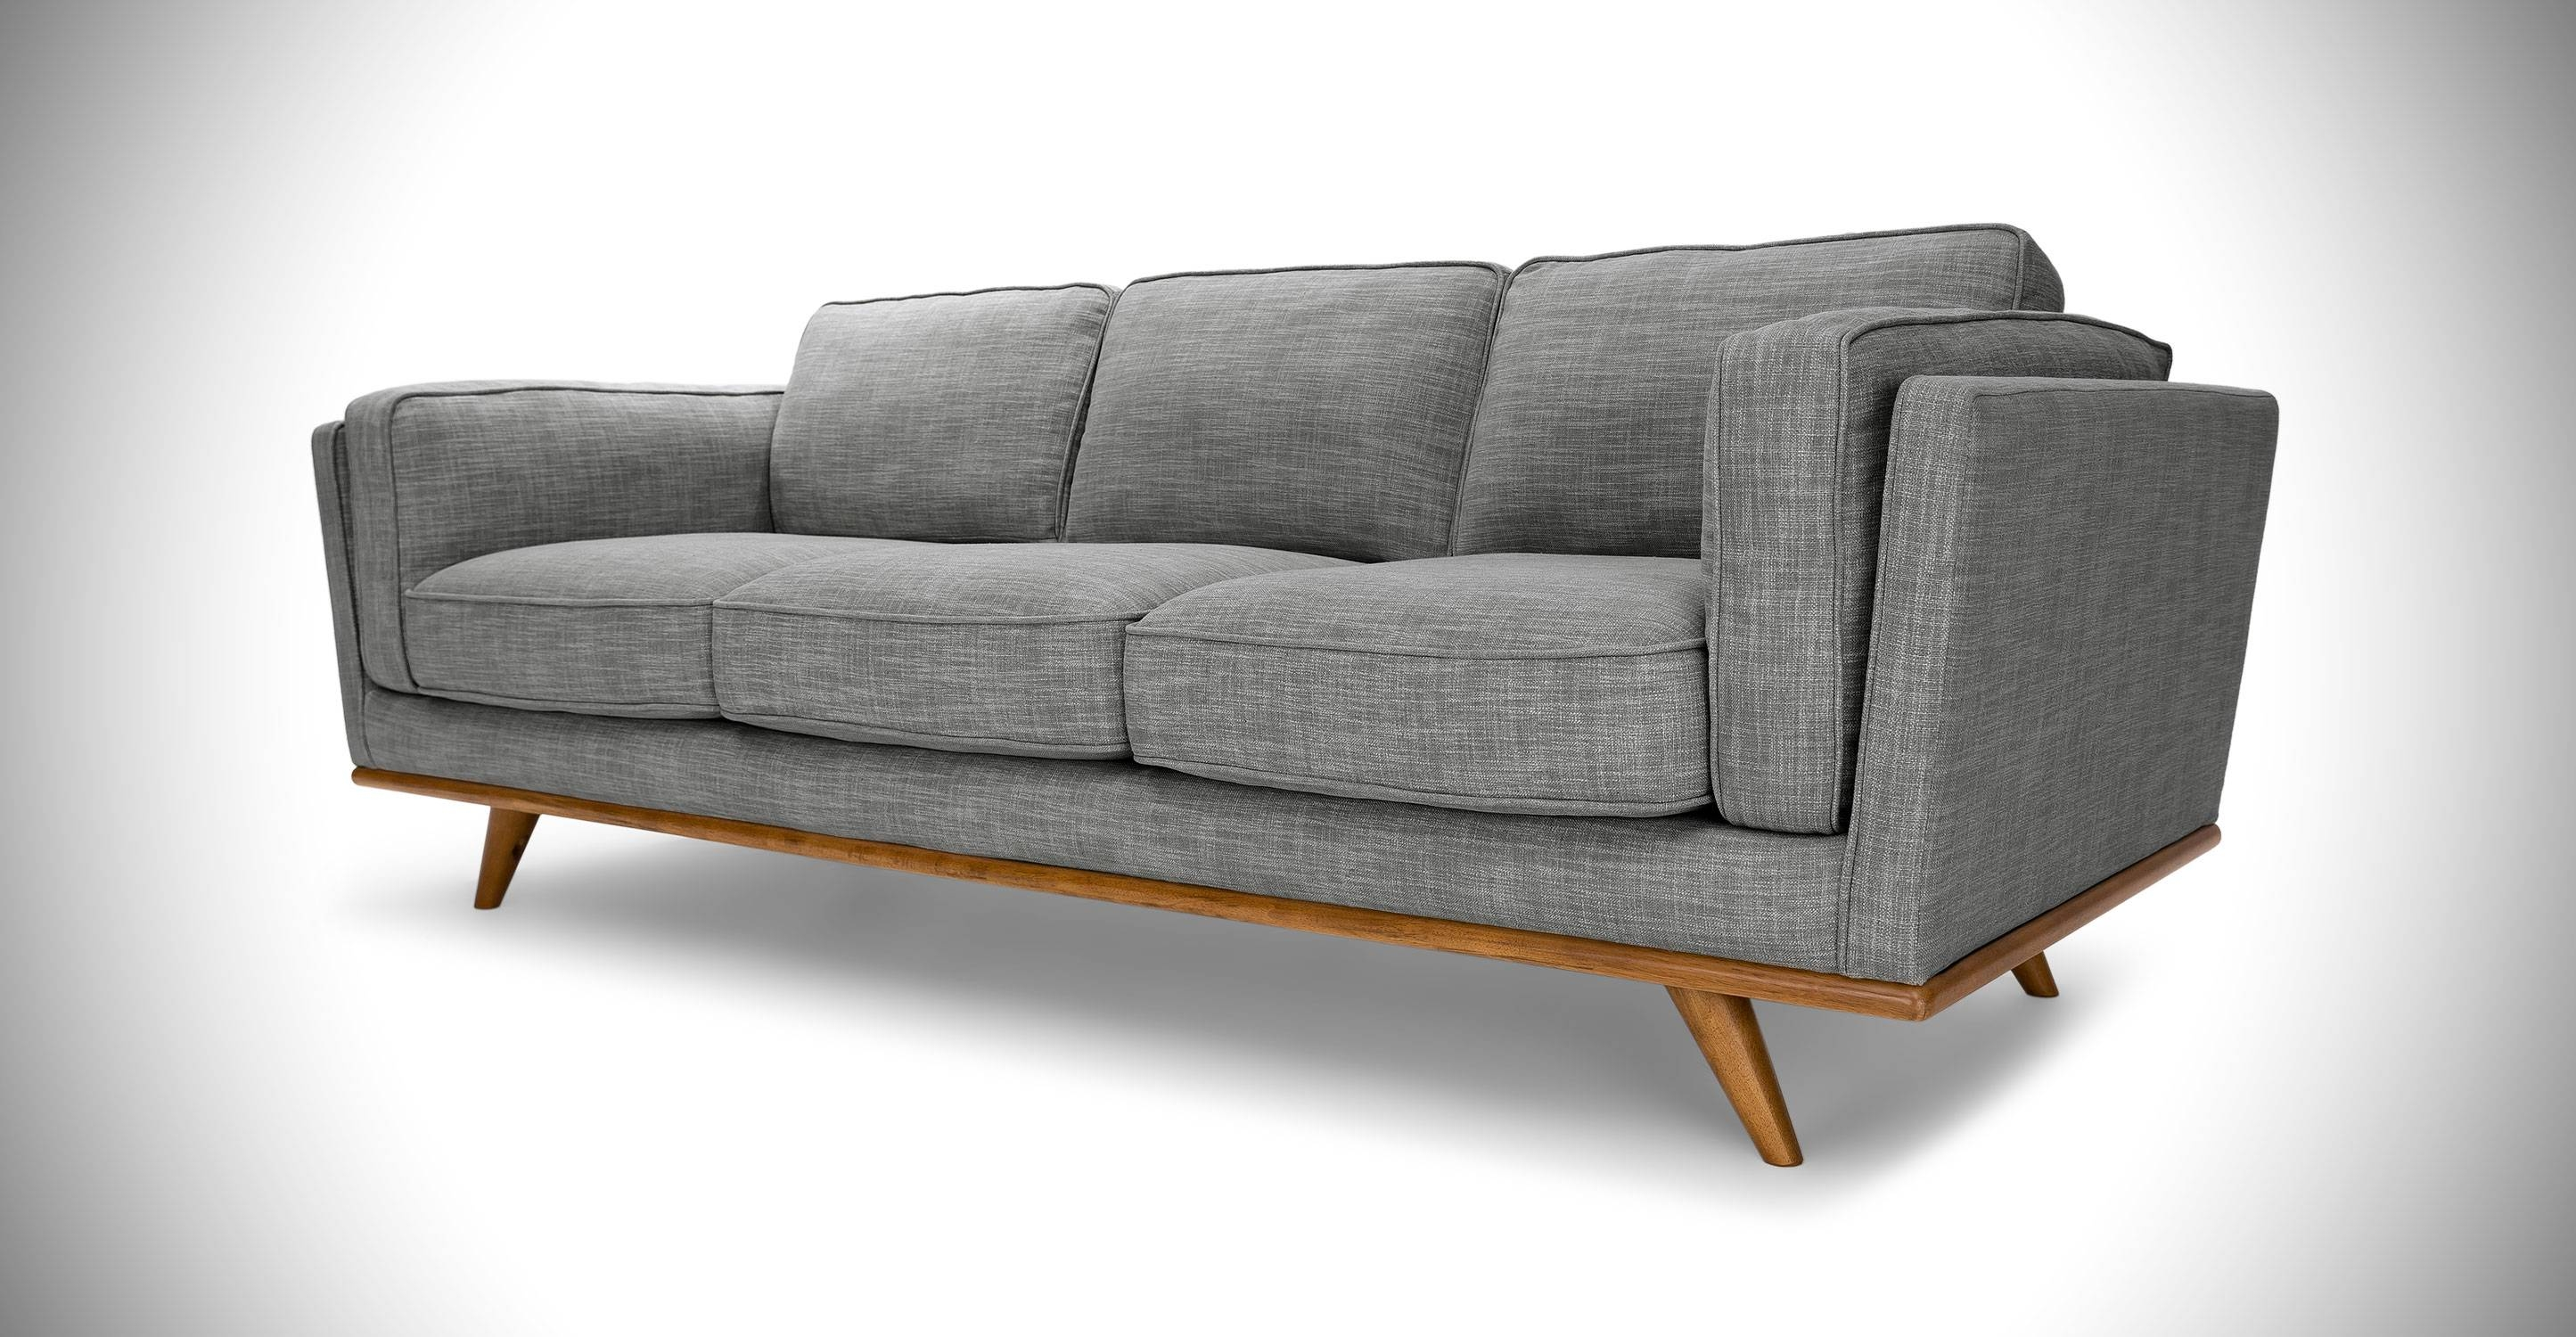 Sofas: Mid Century Sofas For Luxury Living Room Sofa Design inside Mod Sofas (Image 25 of 30)